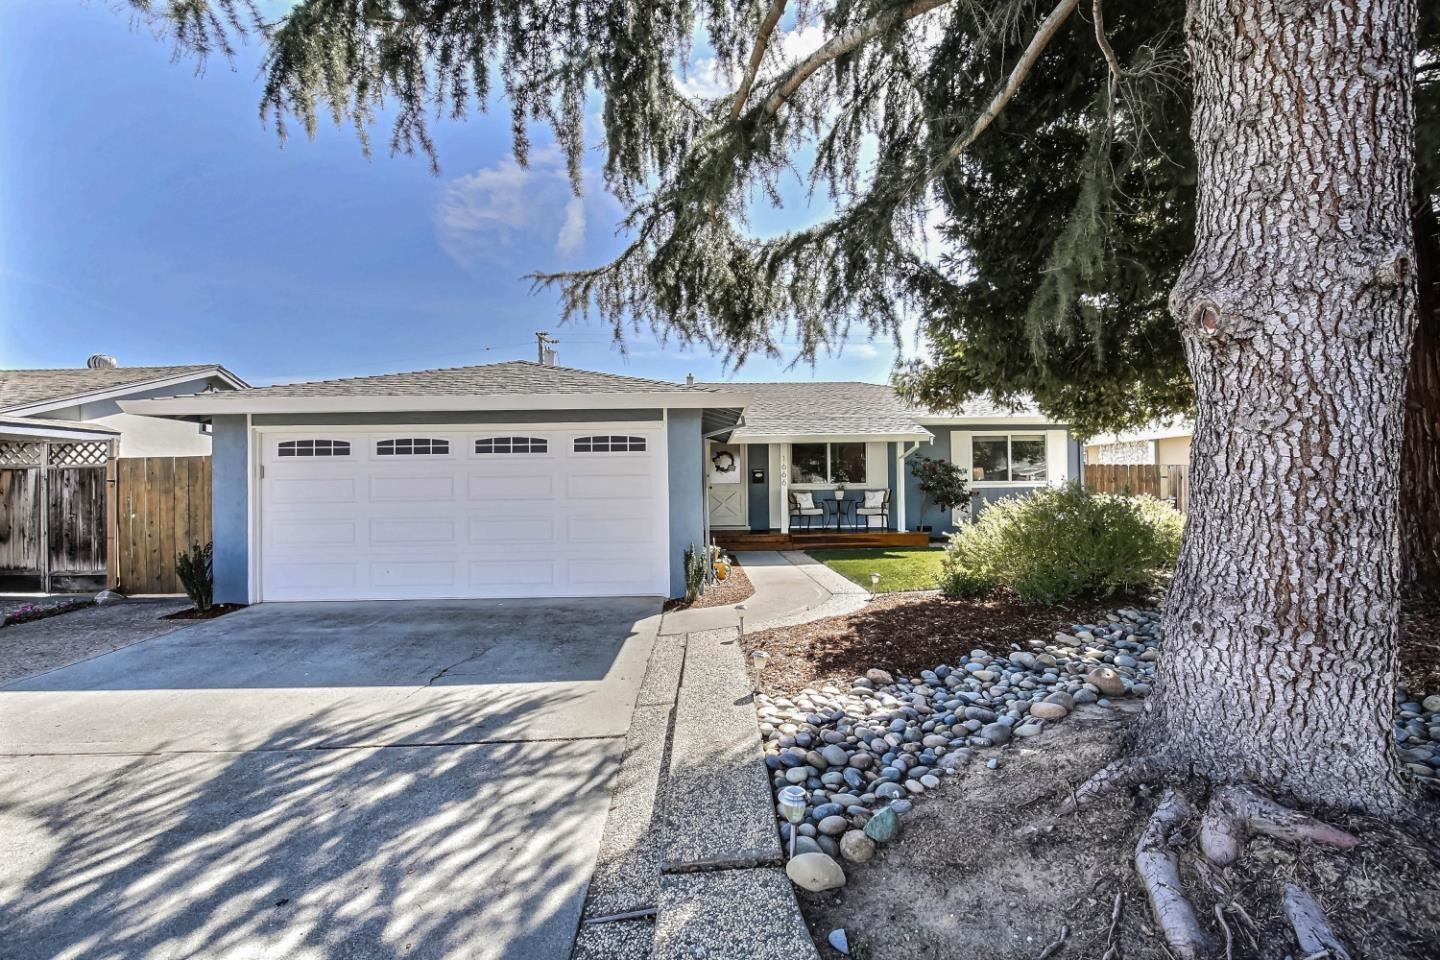 Photo for 1666 Ebbetts DR, CAMPBELL, CA 95008 (MLS # ML81837464)